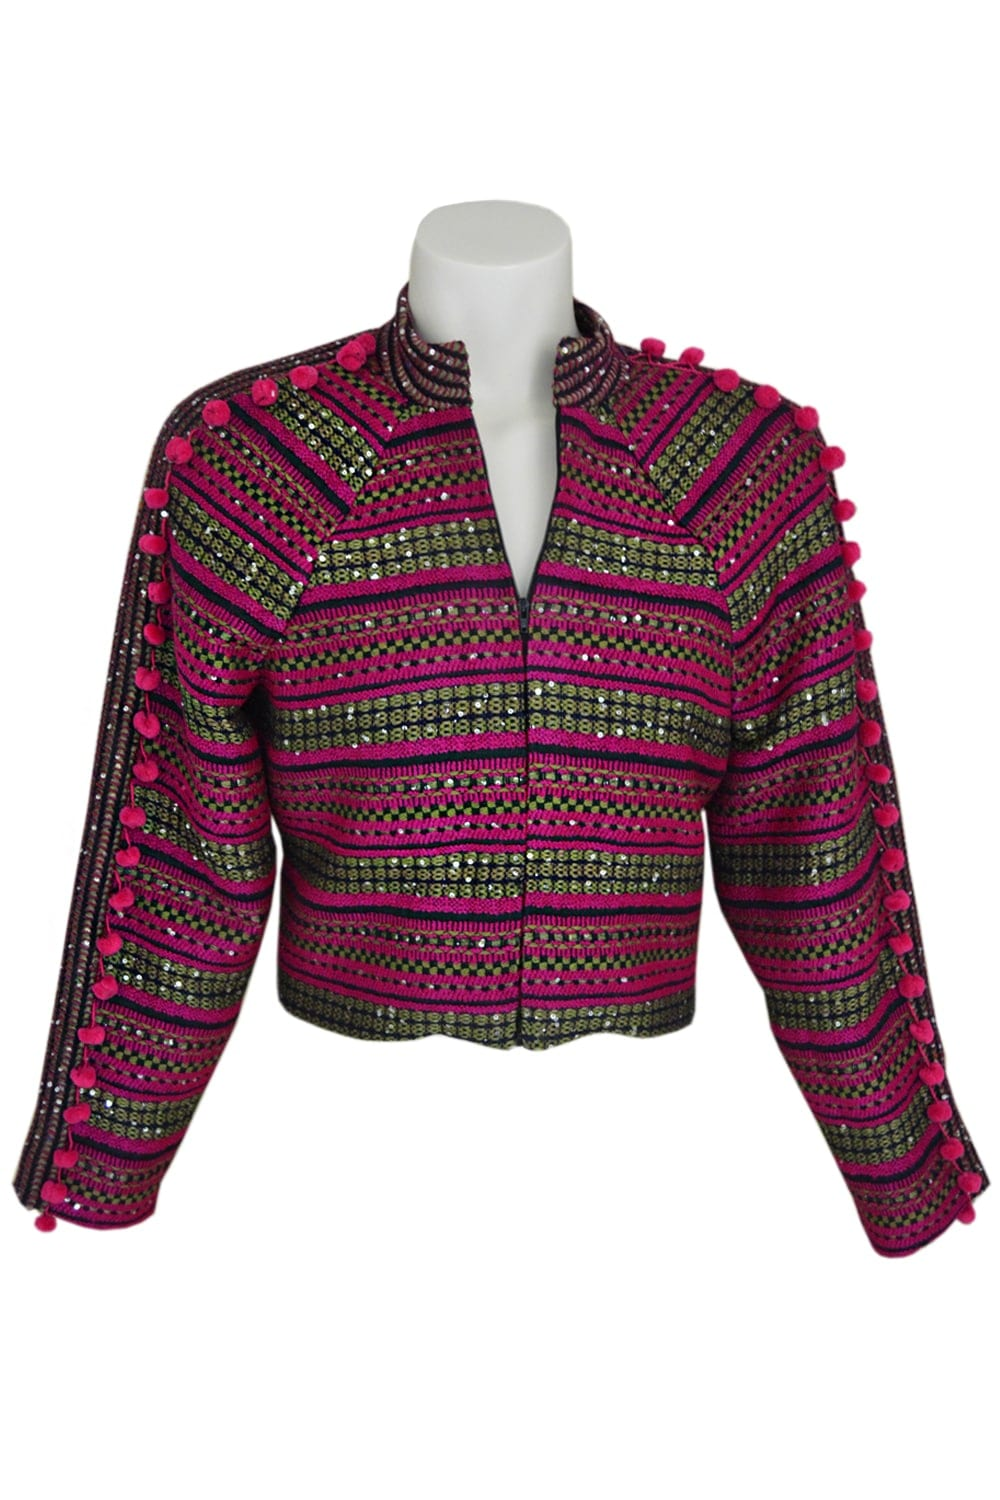 Tweed jacket embroidered. Closed on the front by a zip. Raglan sleeves decorated with small pink pompoms.